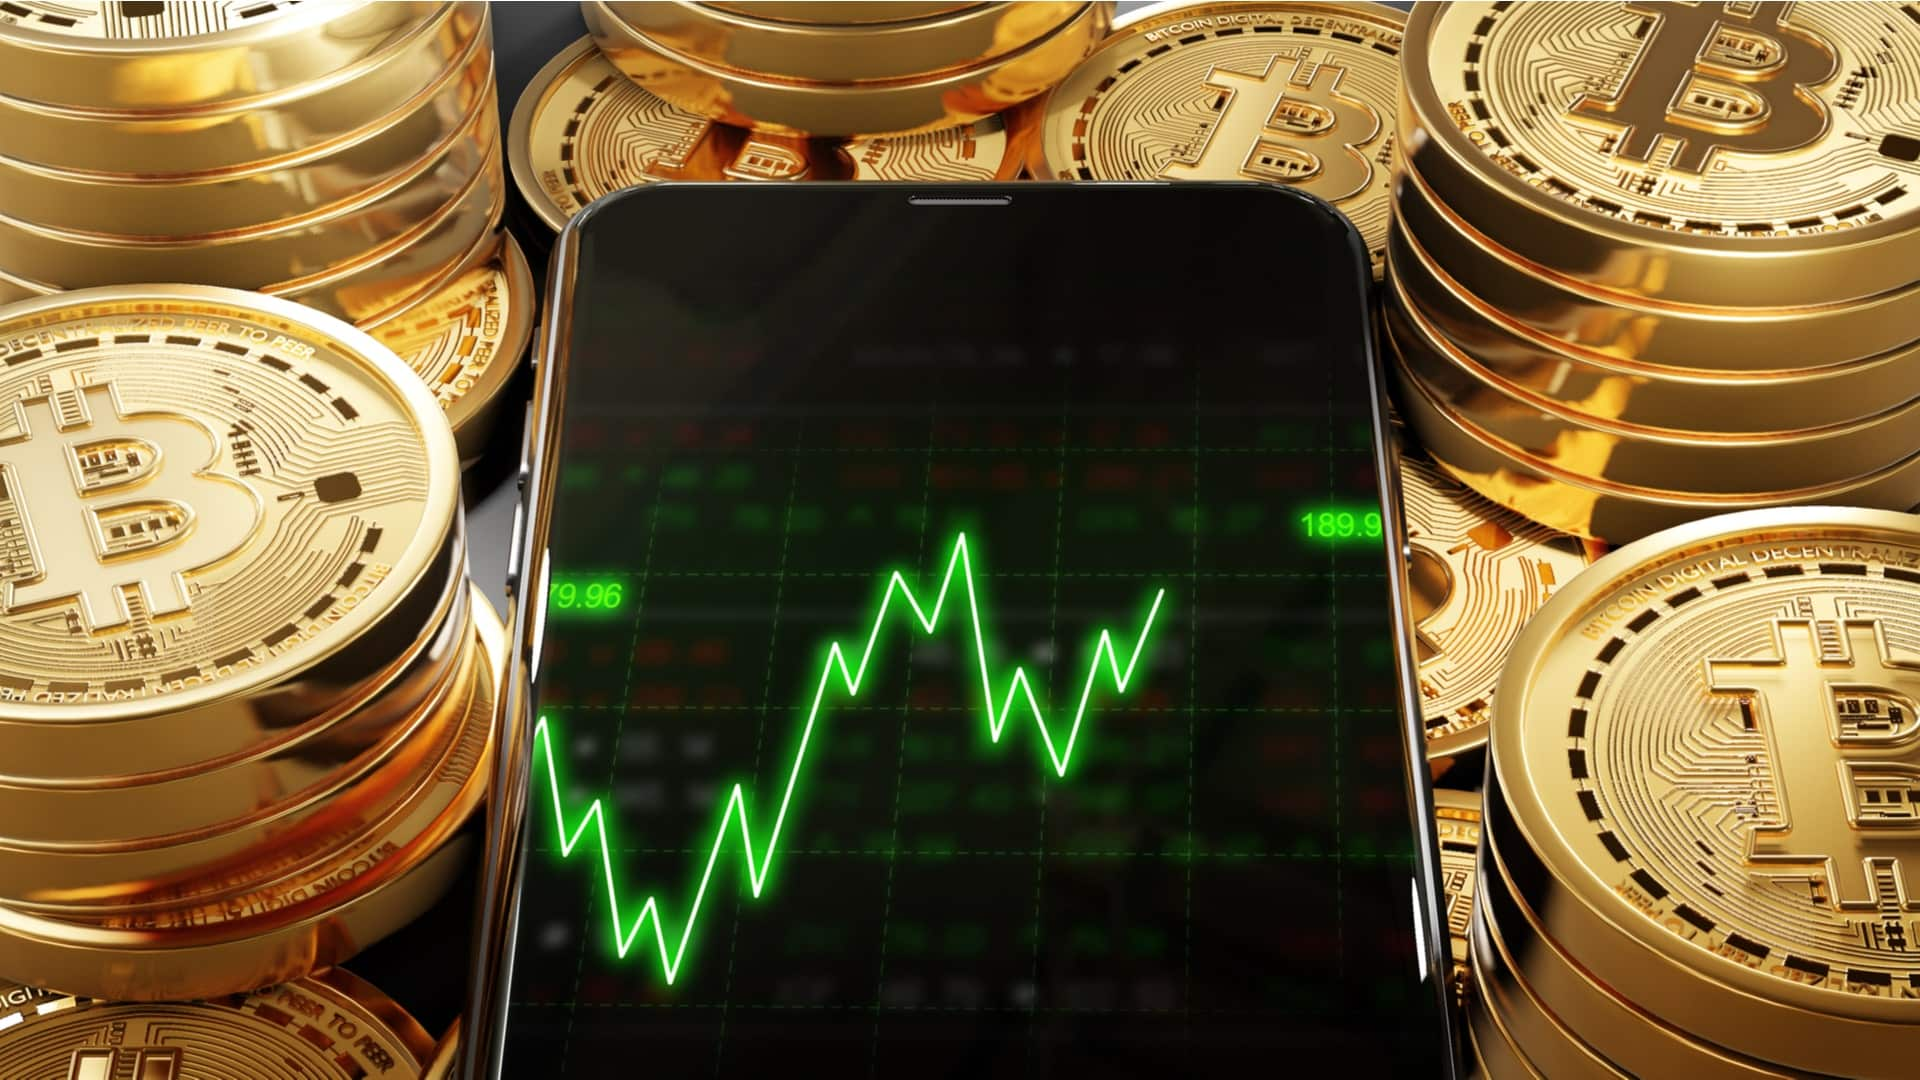 BTC analysis – we enter the overheated zone, the price must cool down for a short time